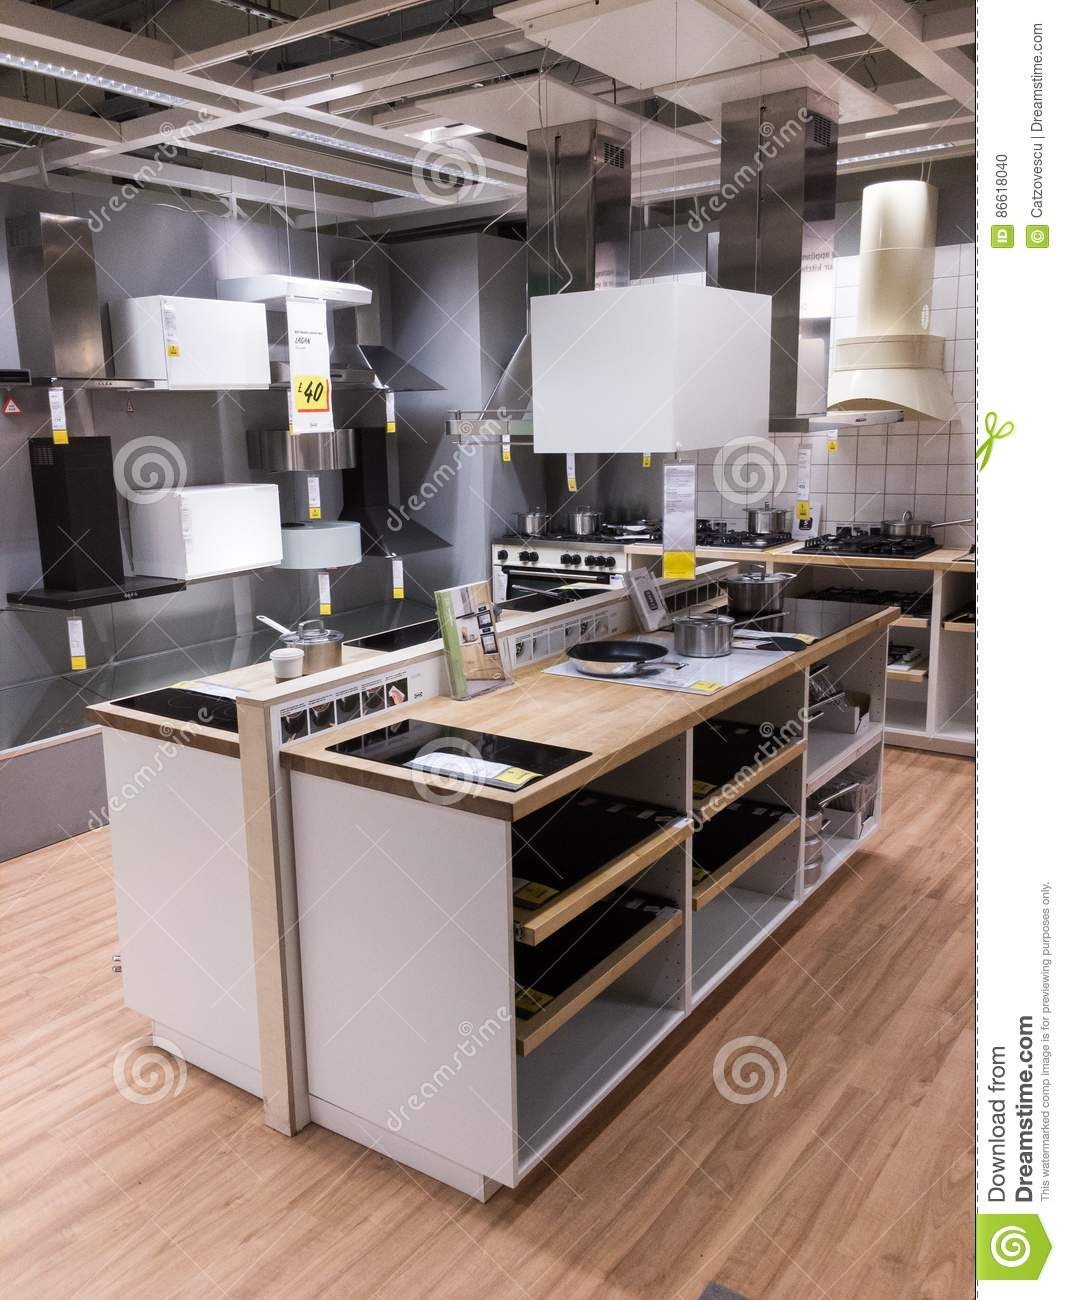 Shopping for kitchen